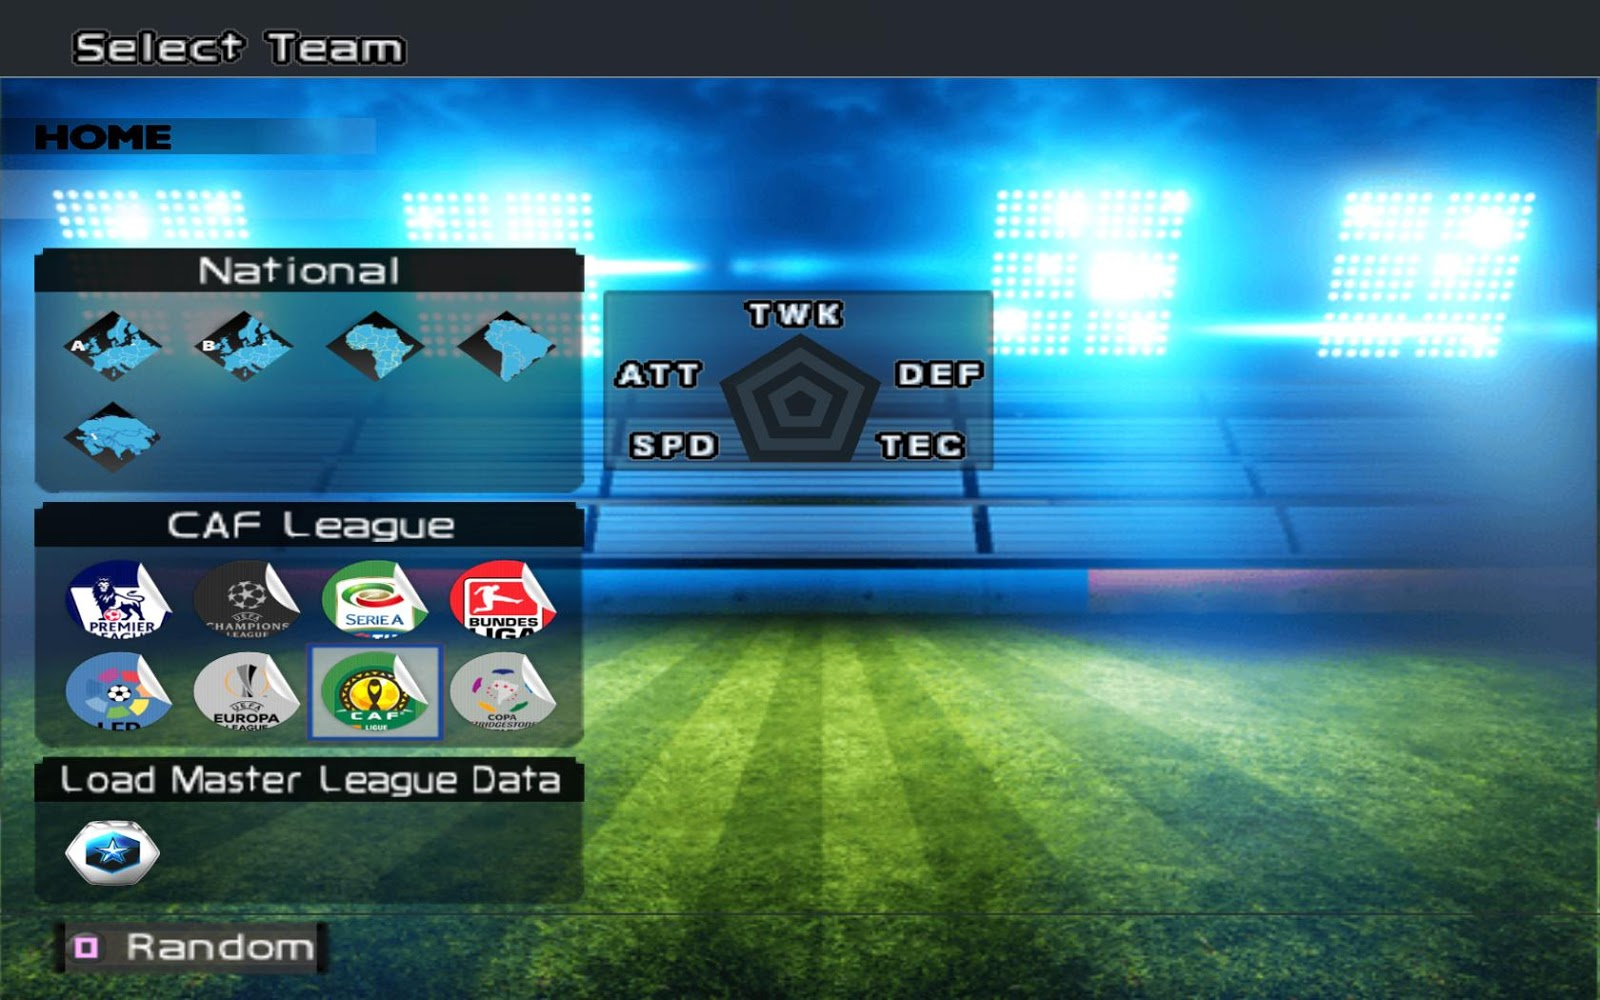 EGY- HD Patch 2016 for PES 6 Winter Transfer 2015/2016 | Windows 10